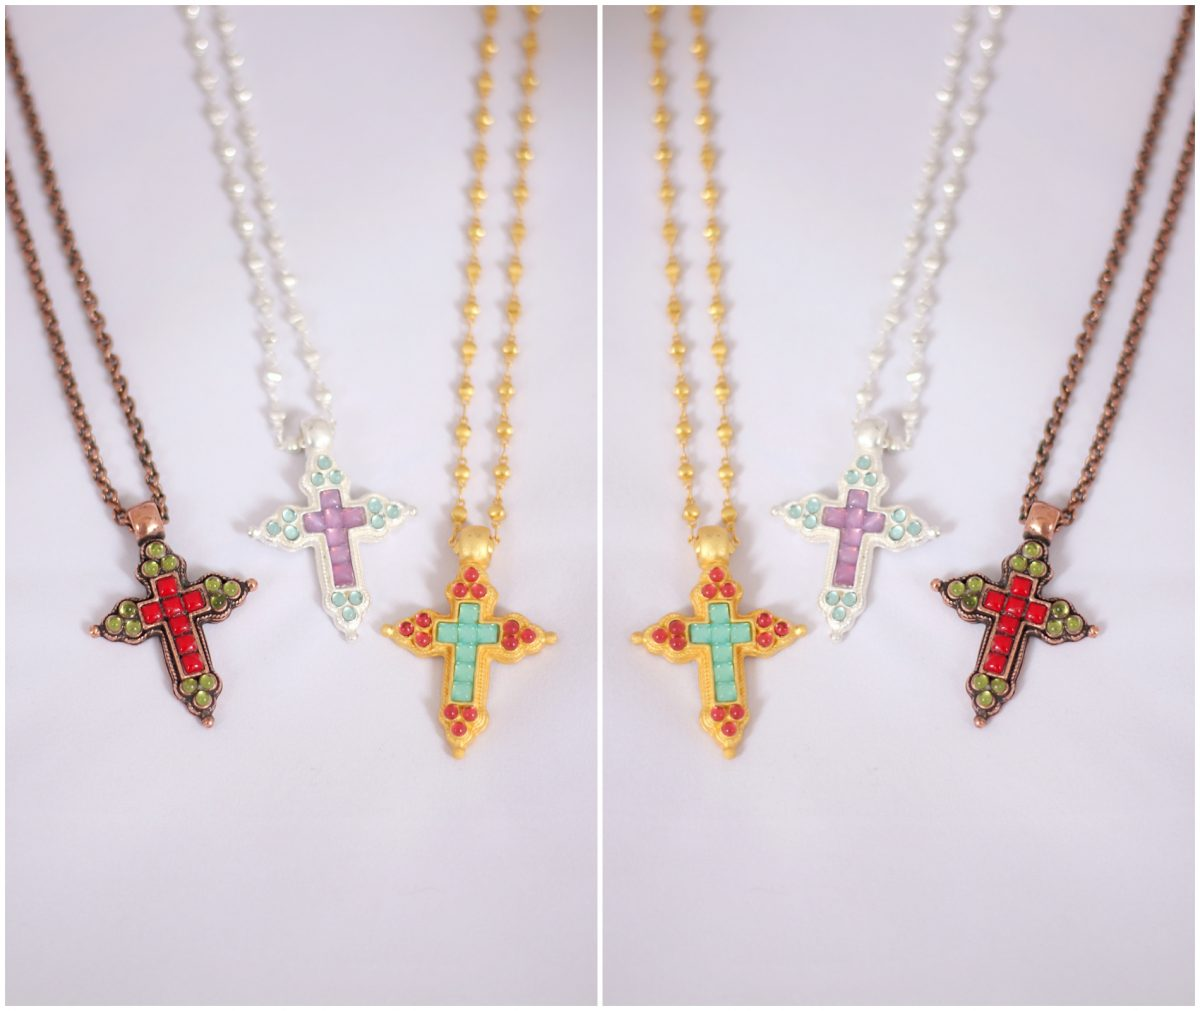 necklace with cross for women